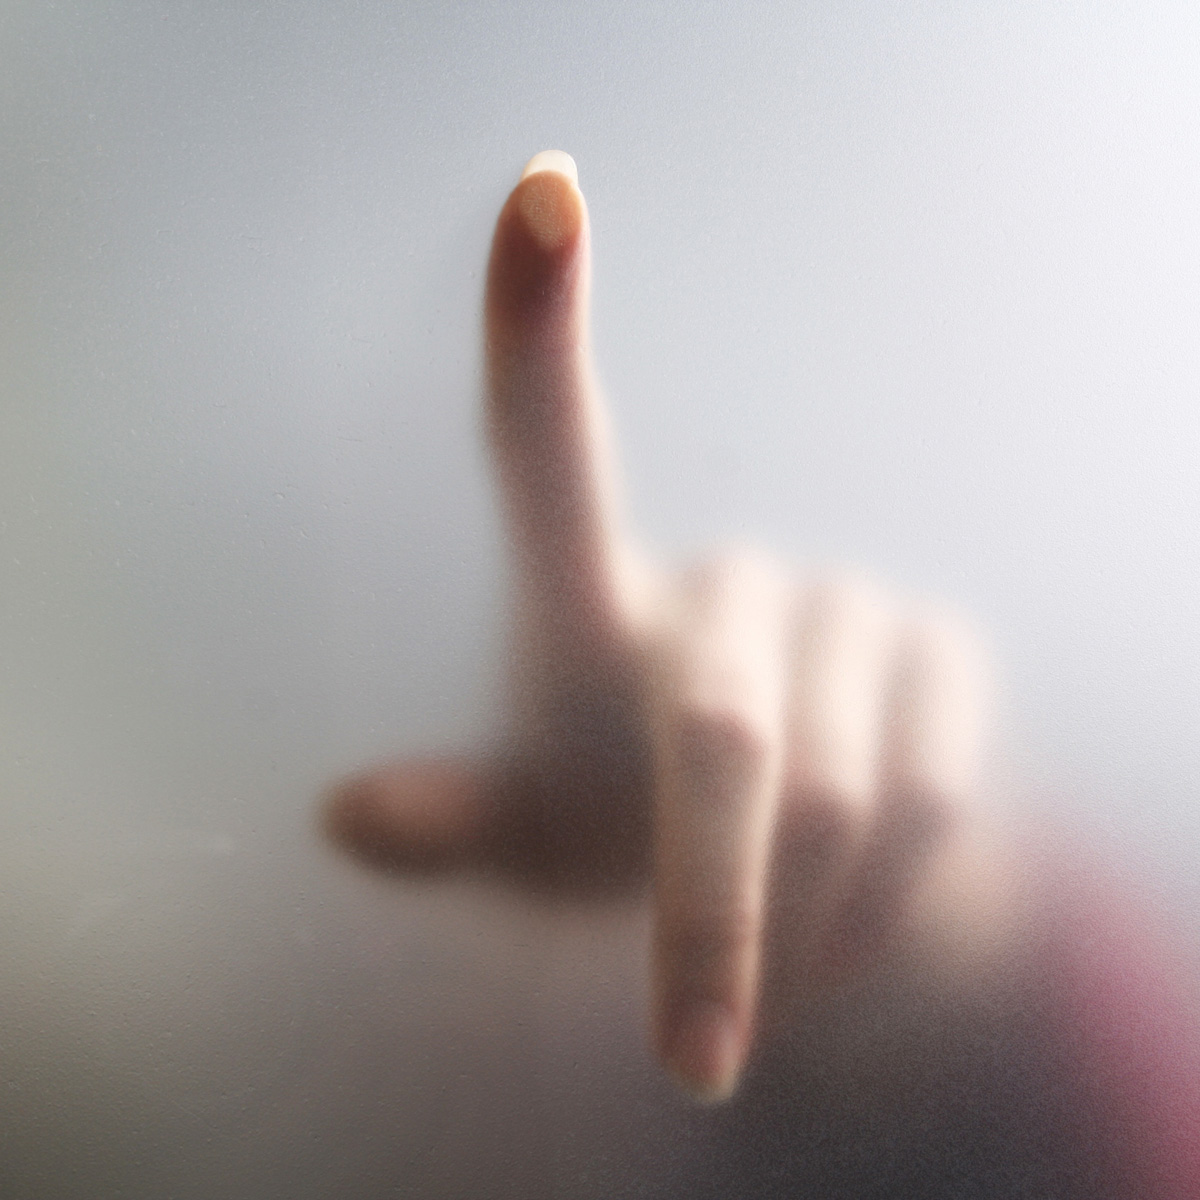 Touch screen with a finger 26333